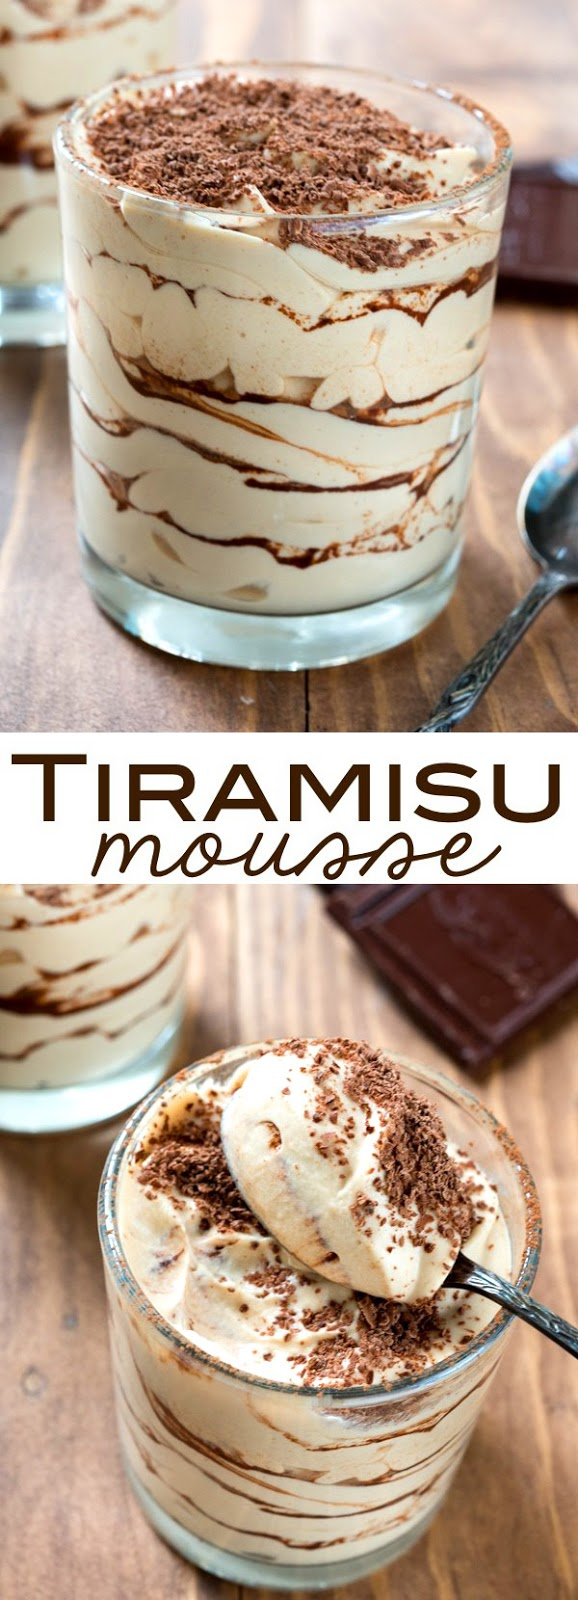 The EASY Tiramisu Mousse Recipe, It's Delicious!